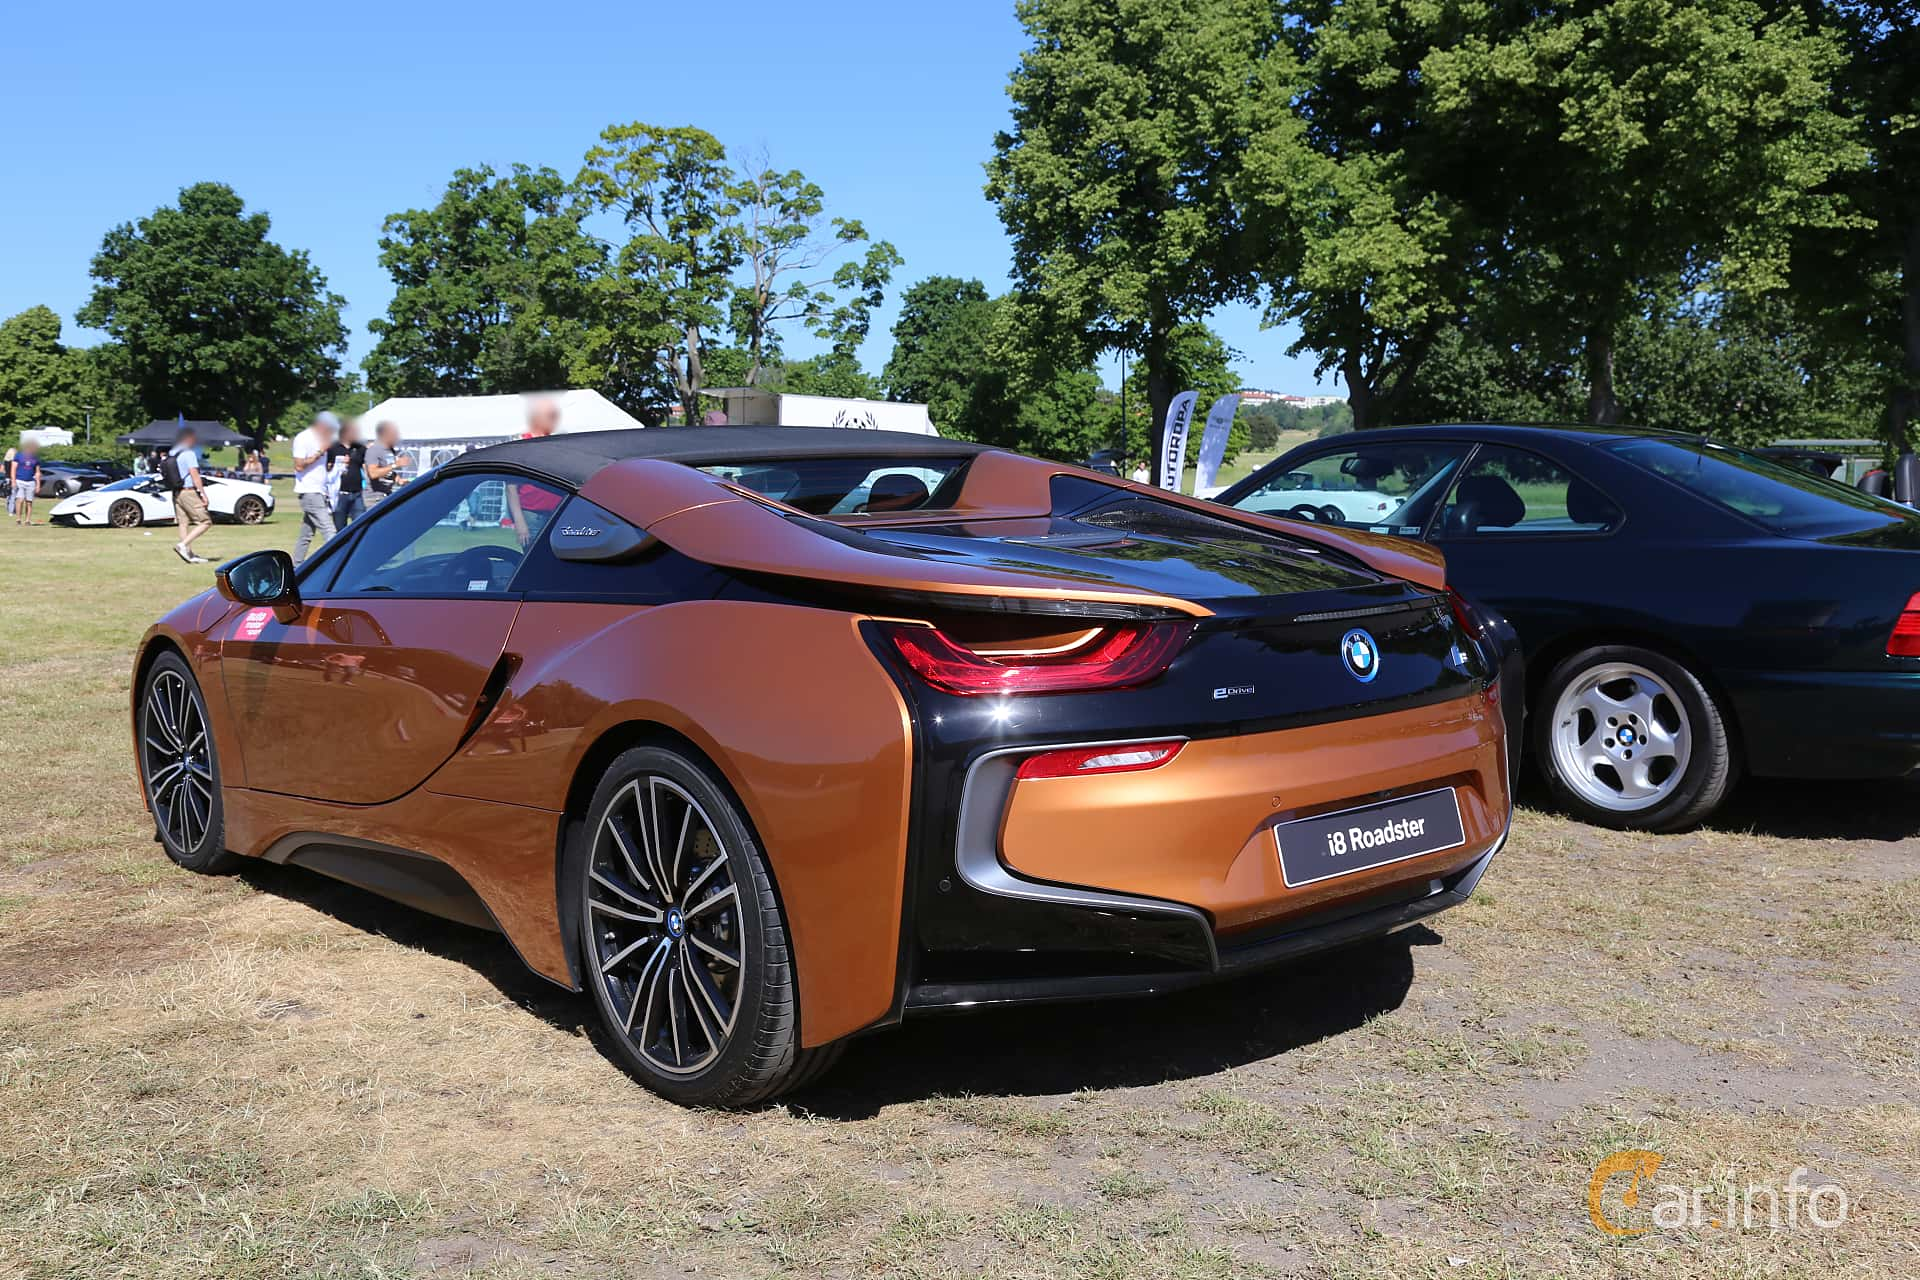 BMW i8 Roadster 1.5 + 11.6 kWh Steptronic, 374hp, 2018 at Cars and Coffee Stockholm 2018